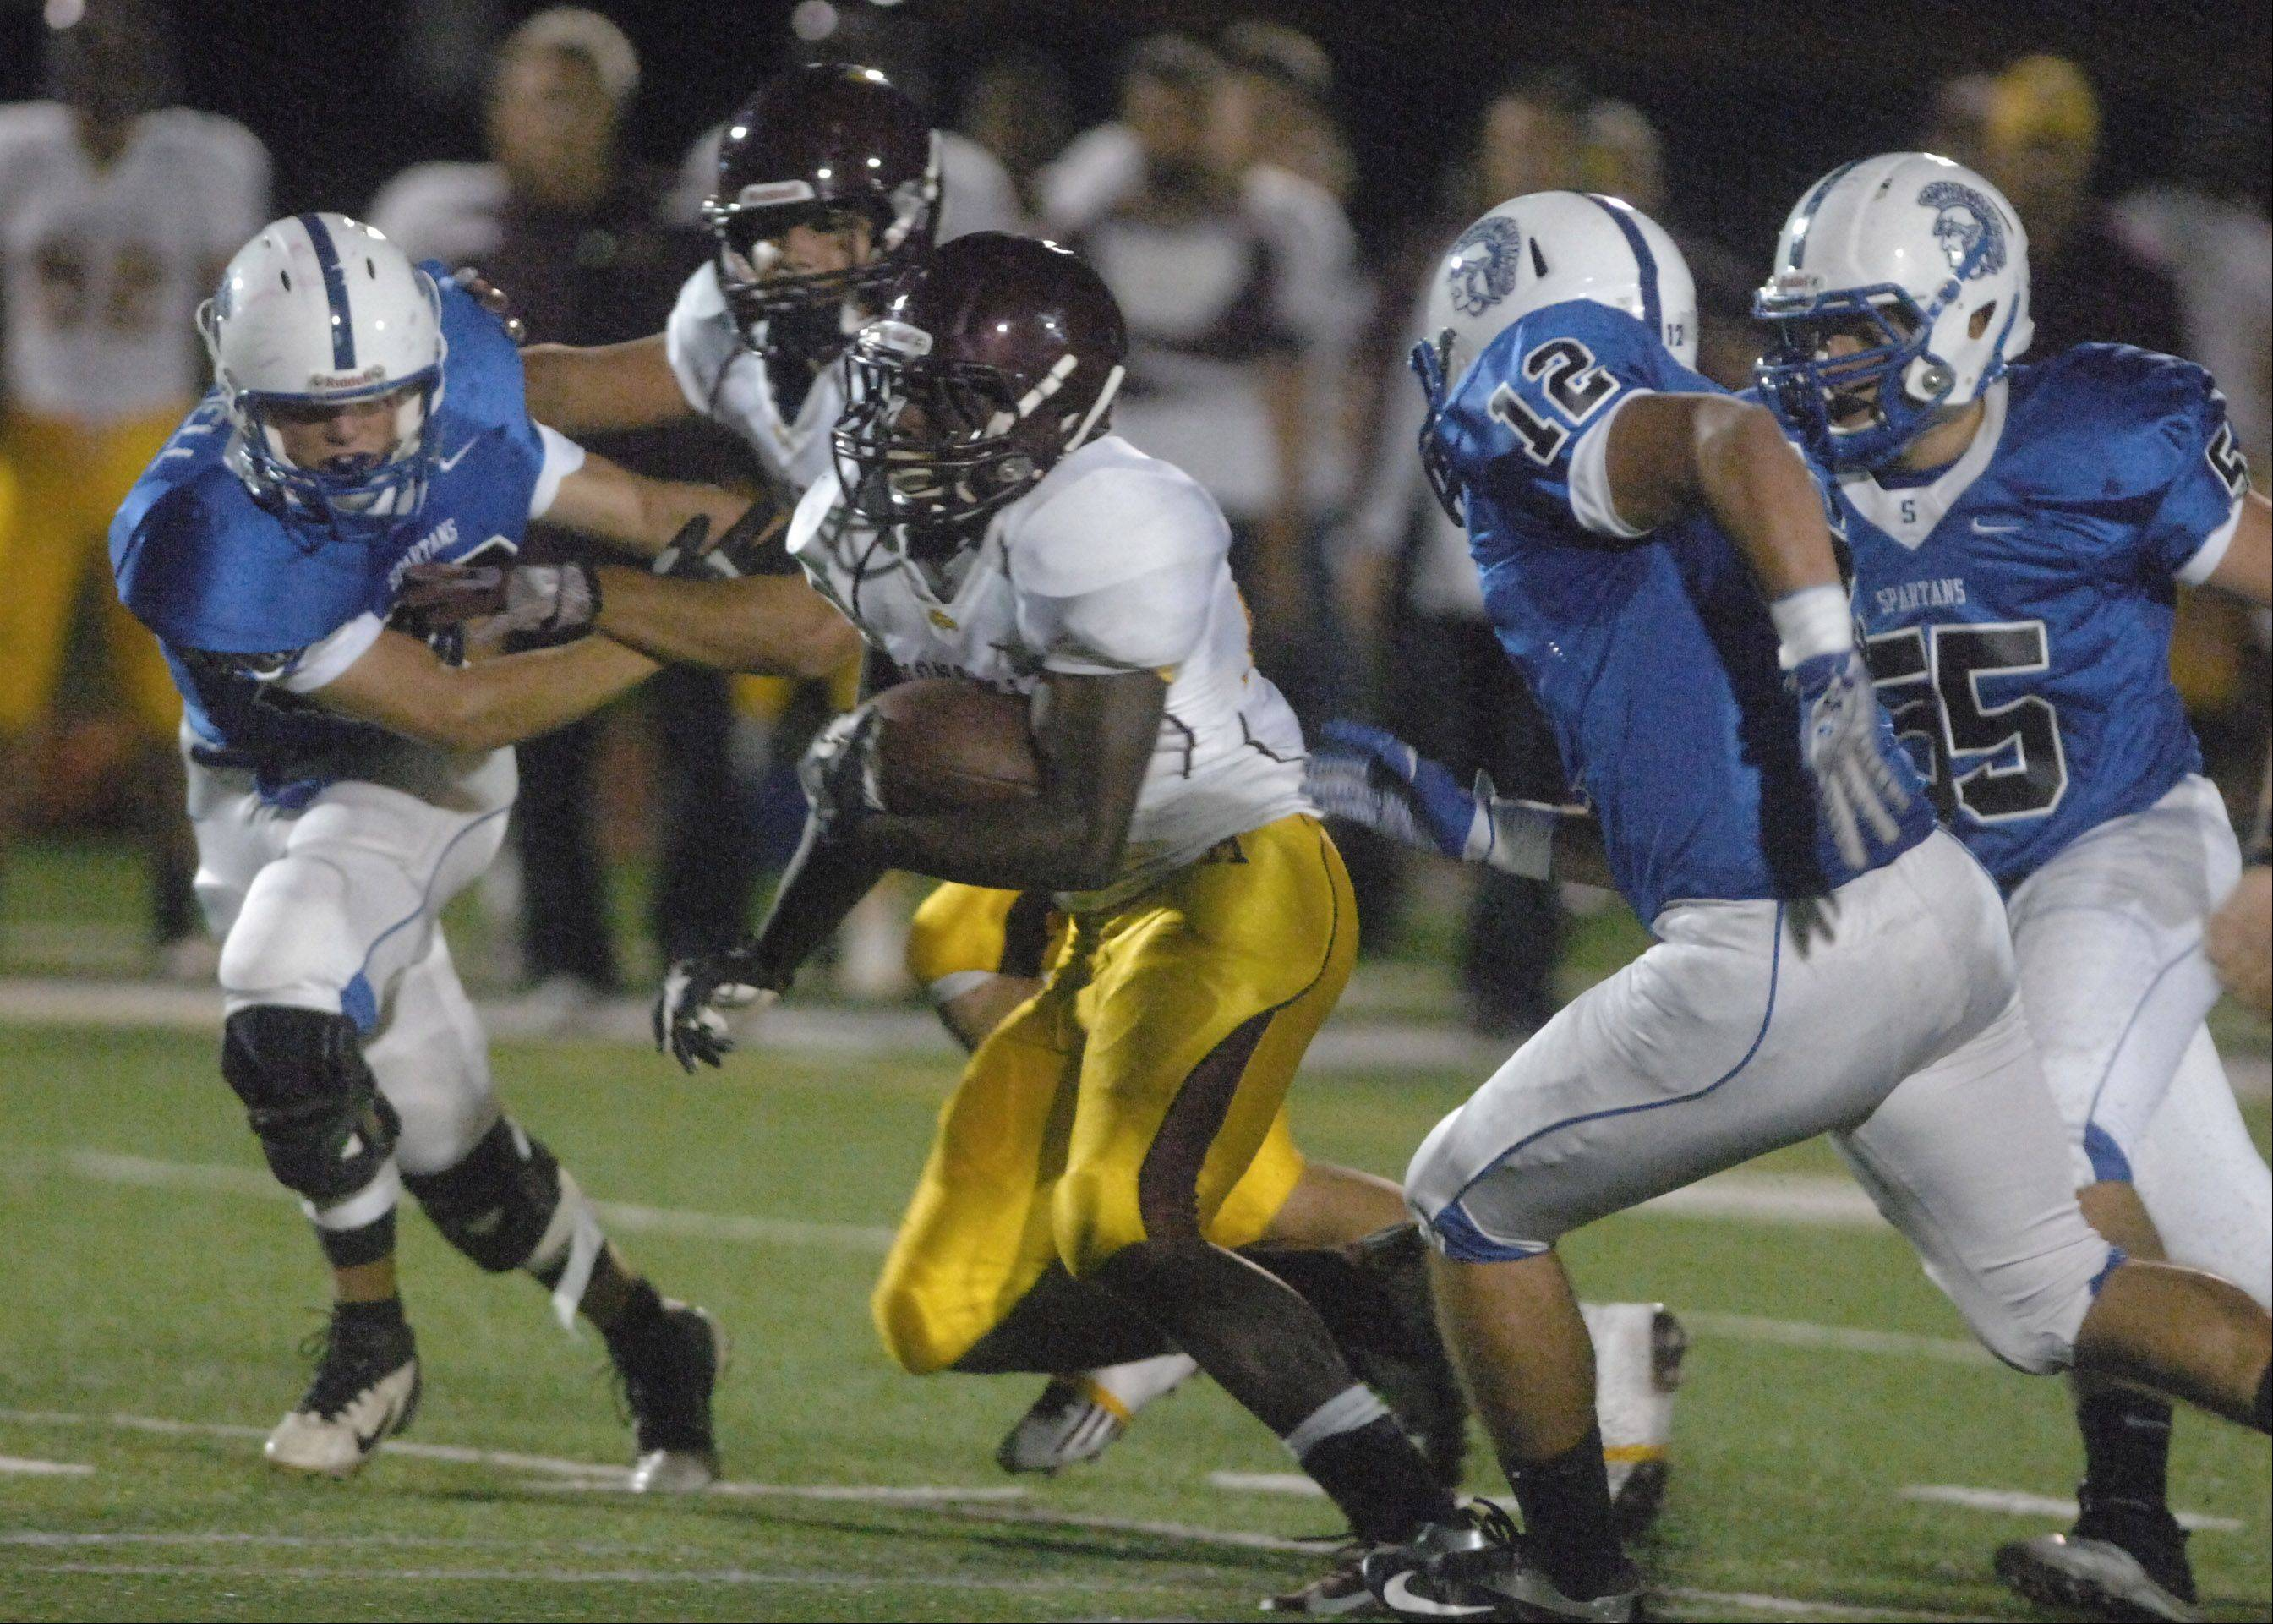 Dimitri Taylor of Montini runs with the ball.